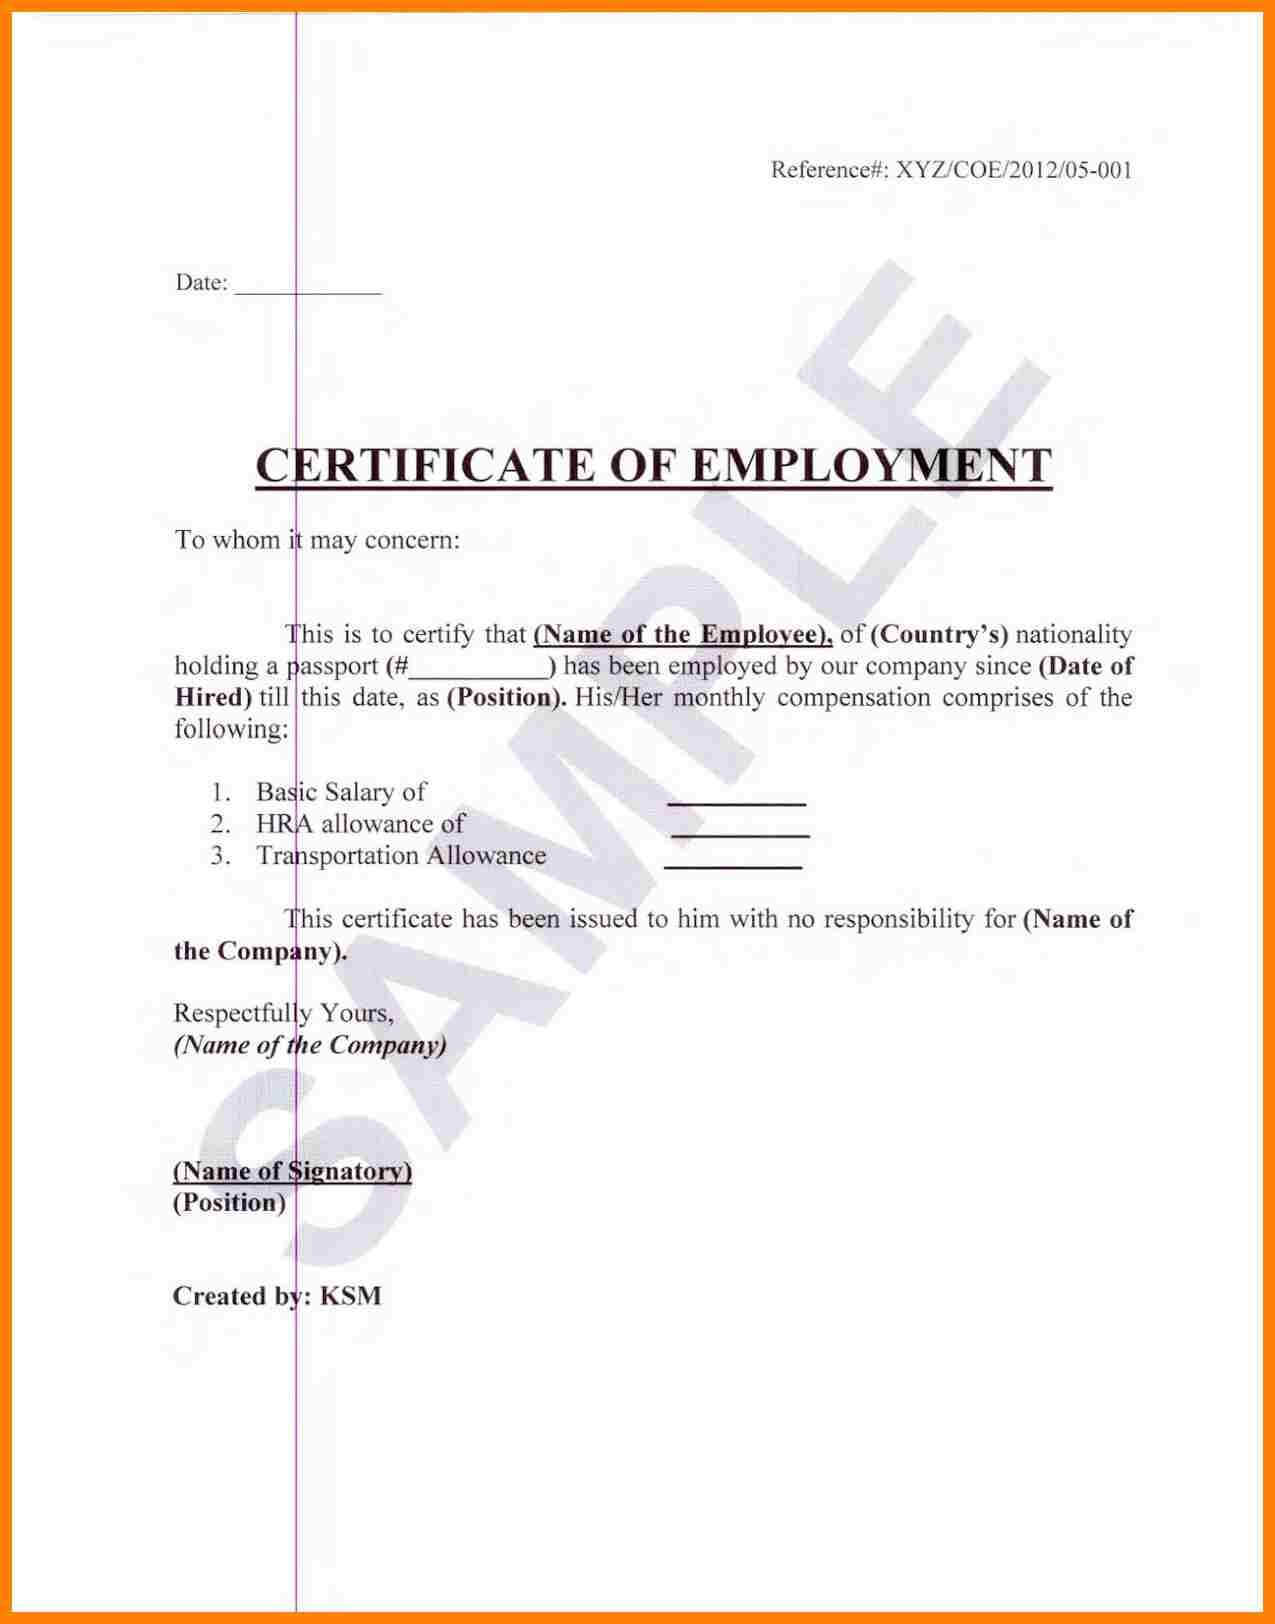 Sample Certification Employment Certificate Tugon Med Clinic Within Certificate Of Employment Template